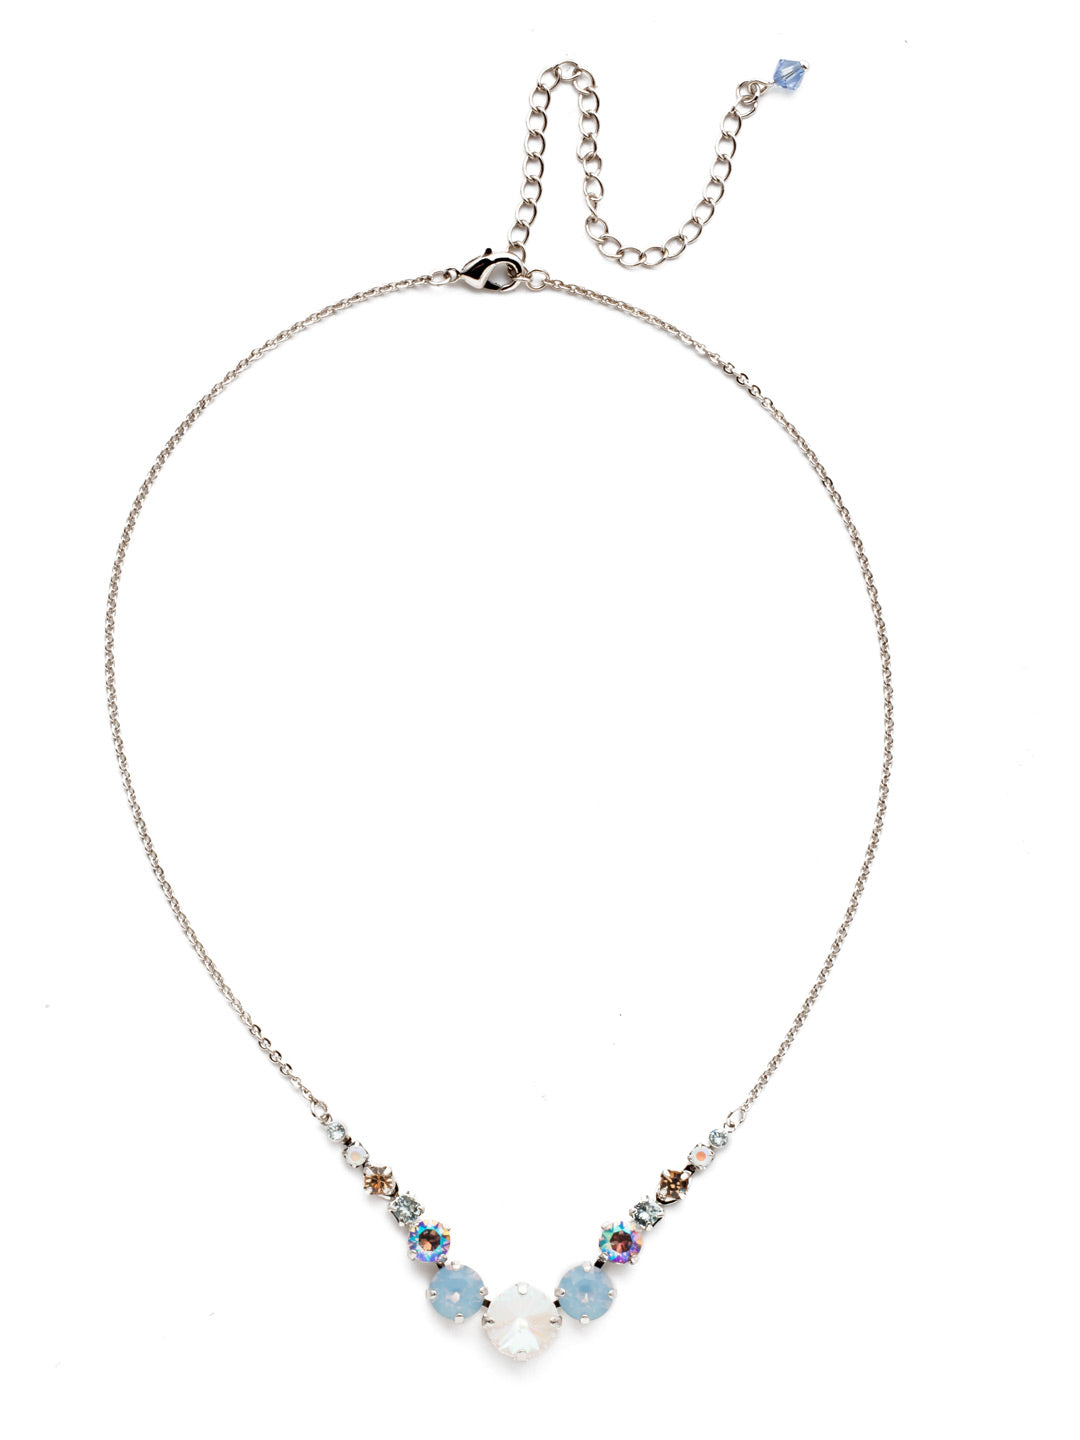 Delicate Round Tennis Necklace - NCQ14RHNTB